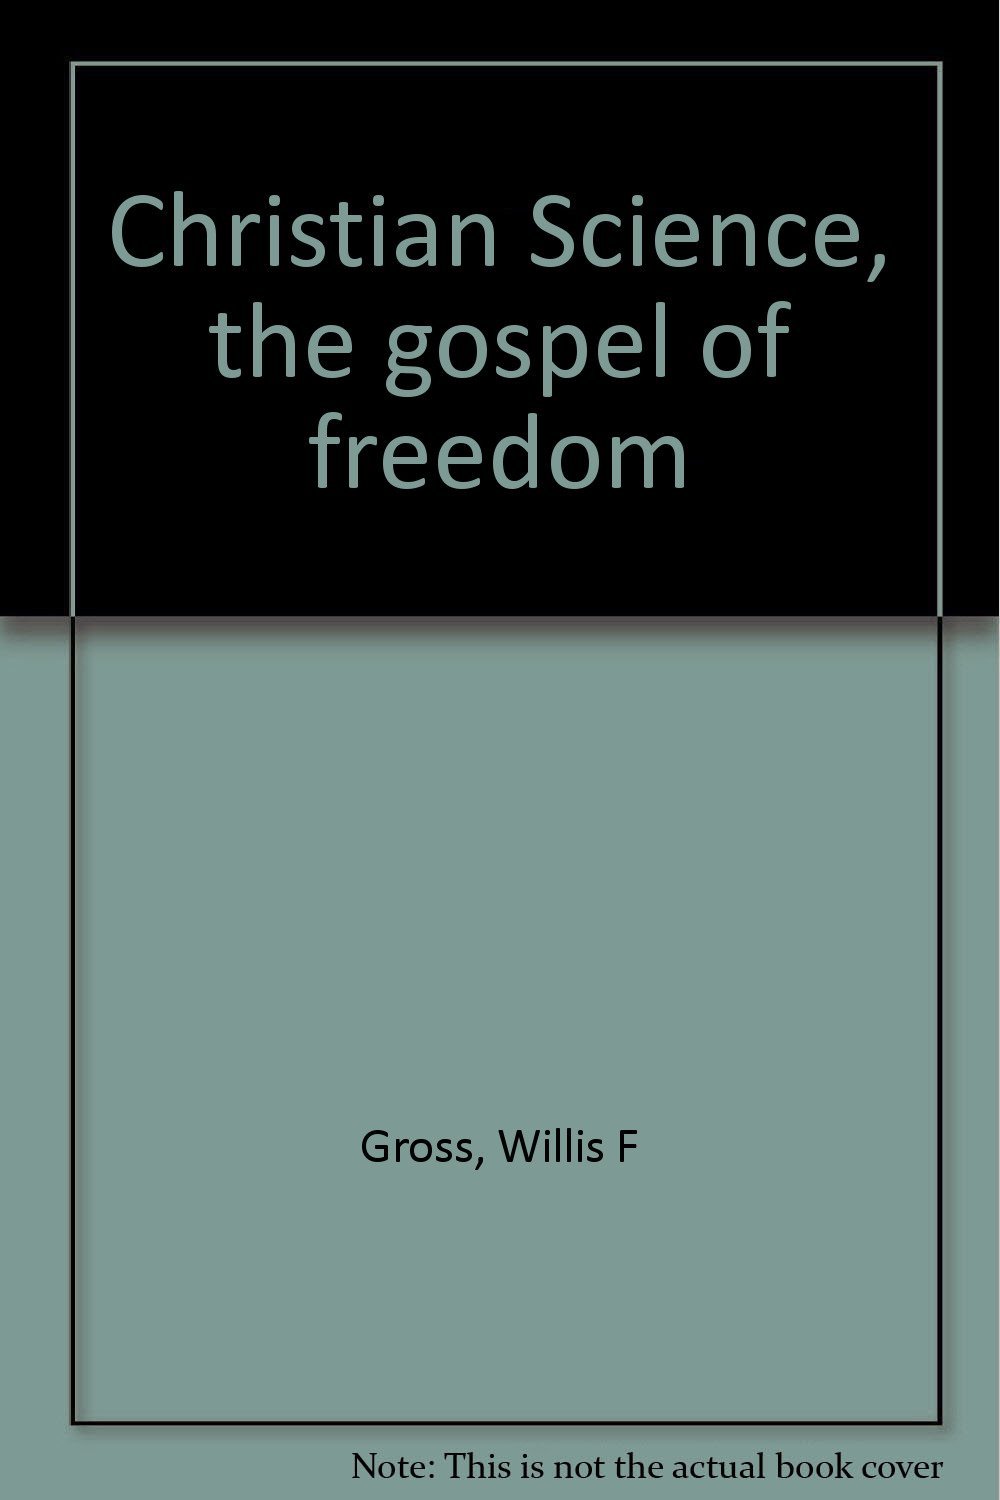 Christian Science, the gospel of freedom